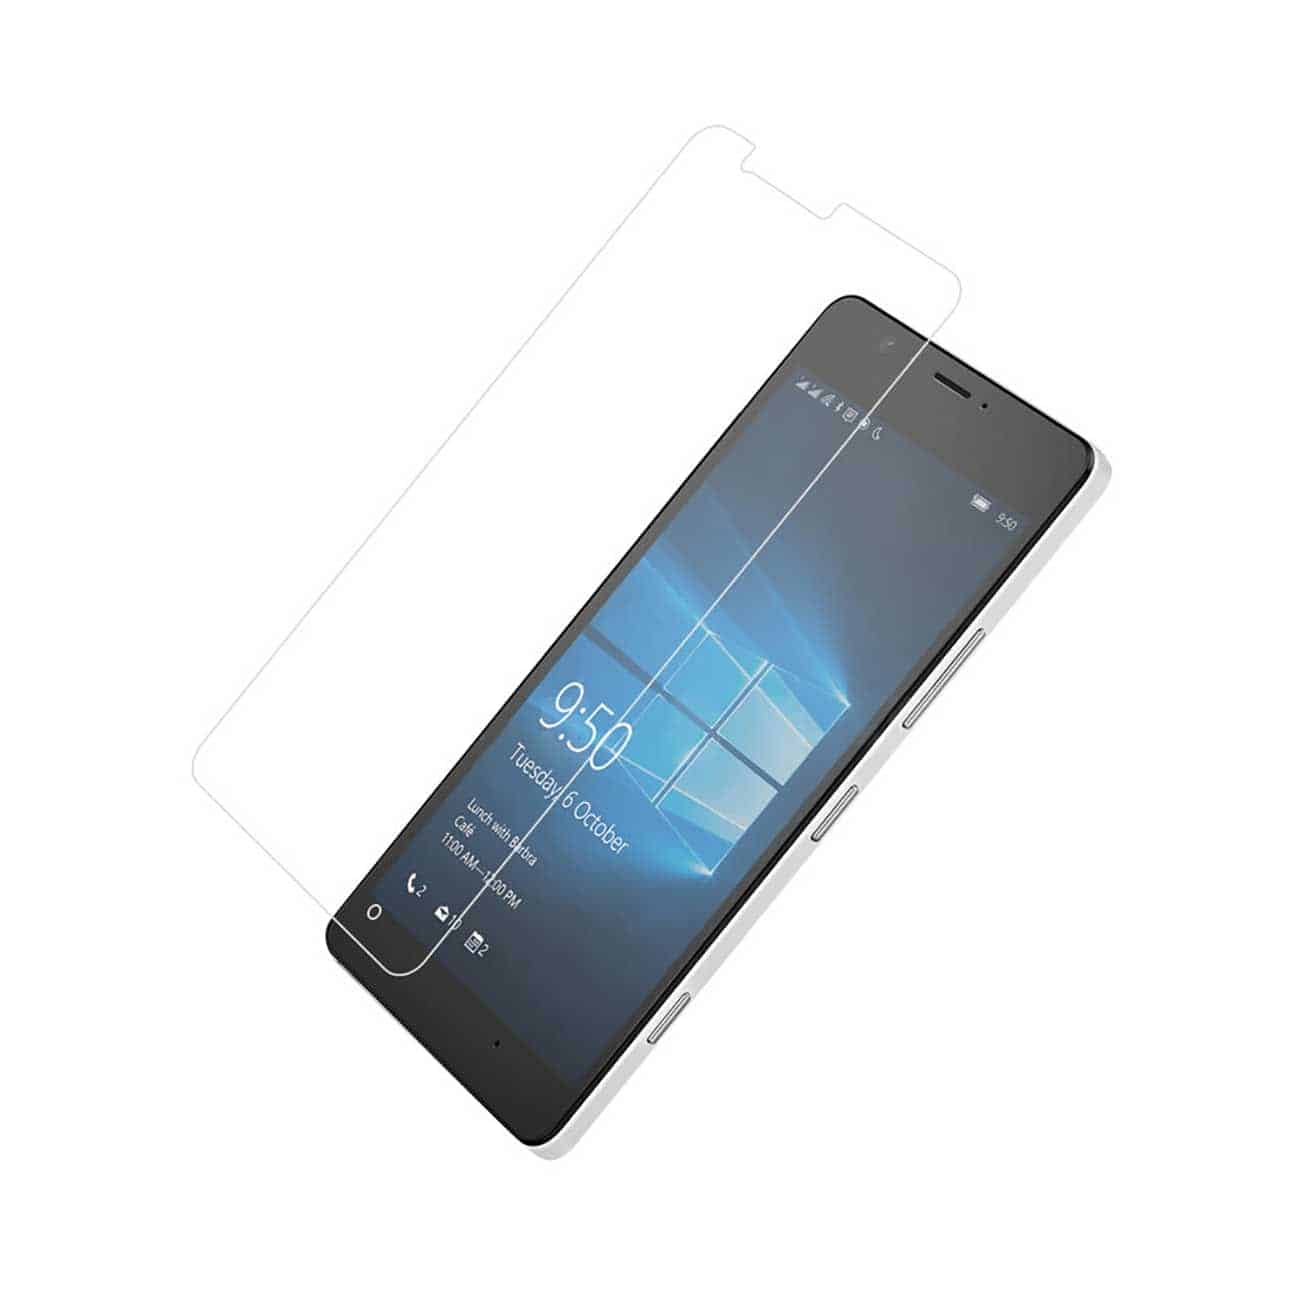 NOKIA LUMIA 950 TEMPERED GLASS SCREEN PROTECTOR IN CLEAR